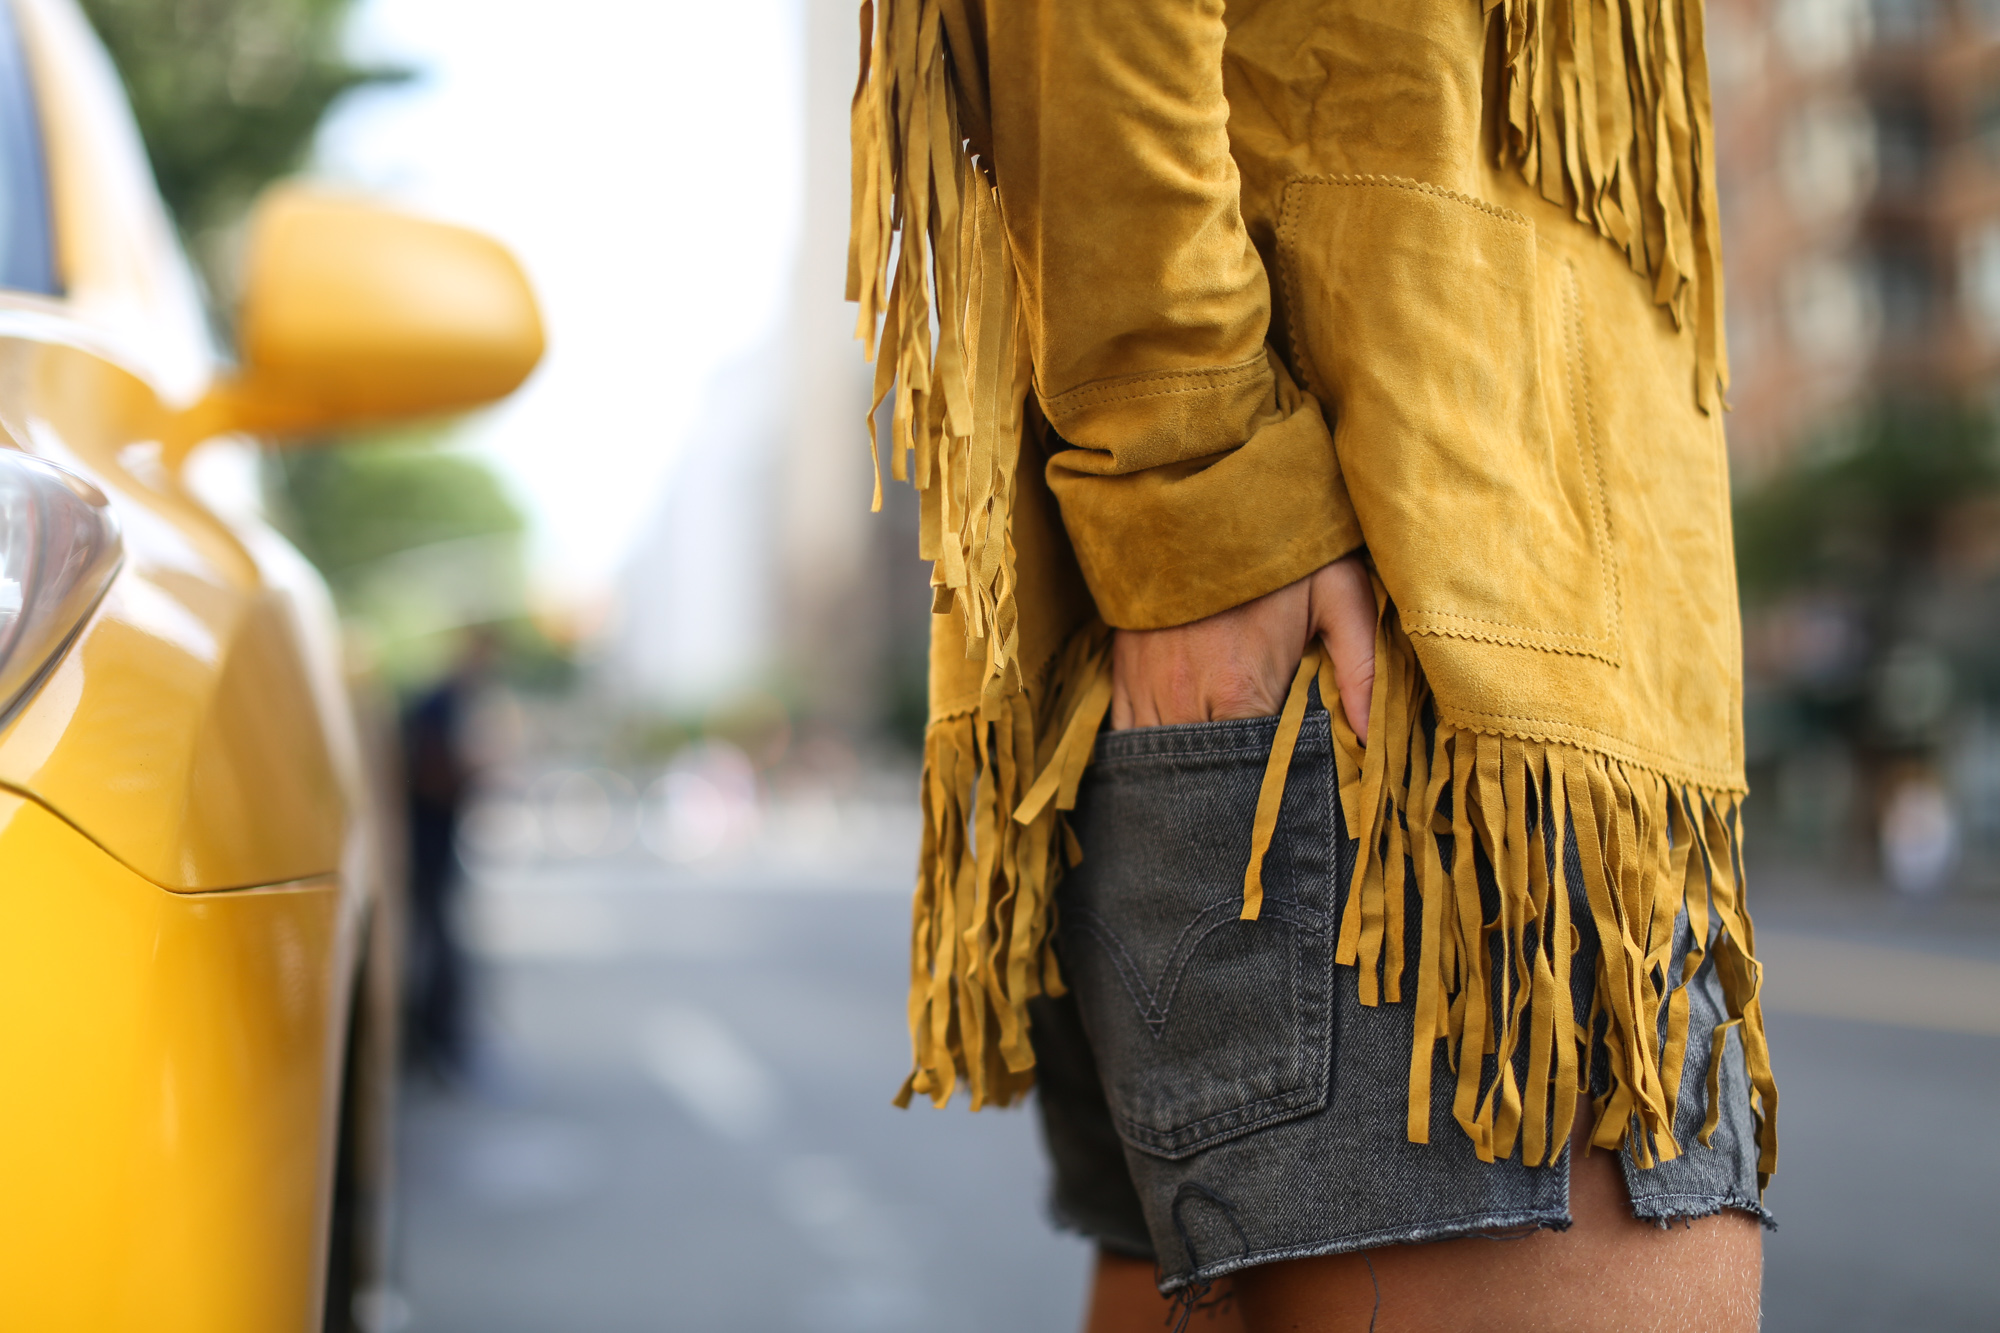 Clochet_streetstyle_suede_fringed_yellow_jacket_levis_501-4